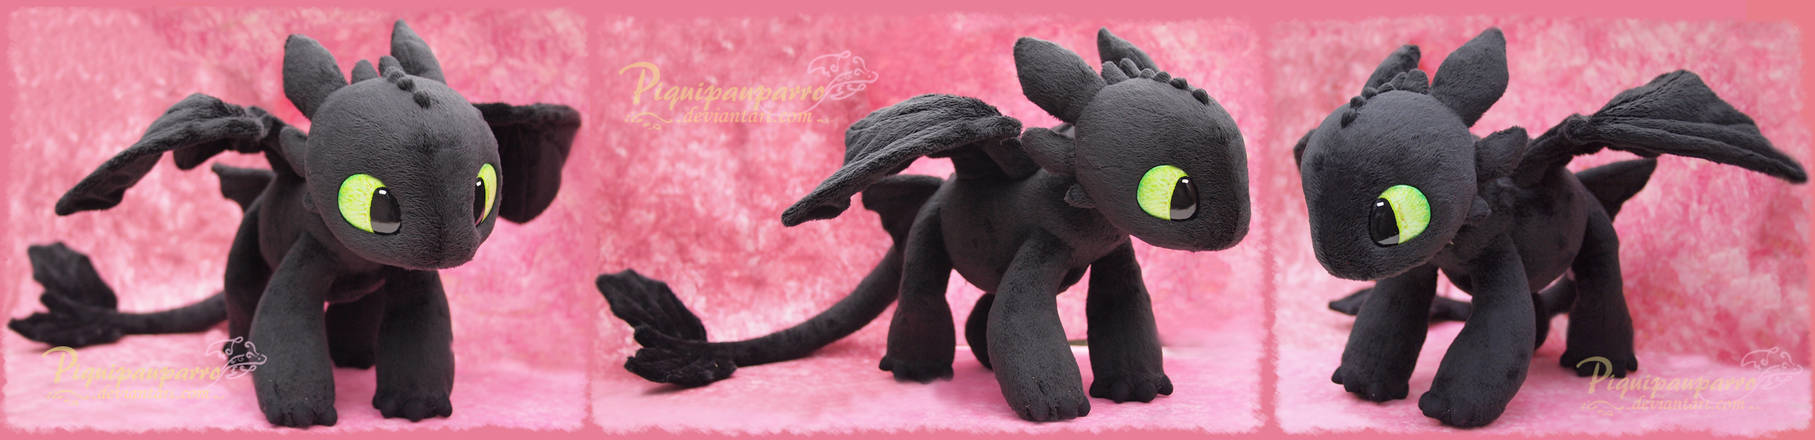 Young Toothless  - Handamde plushie